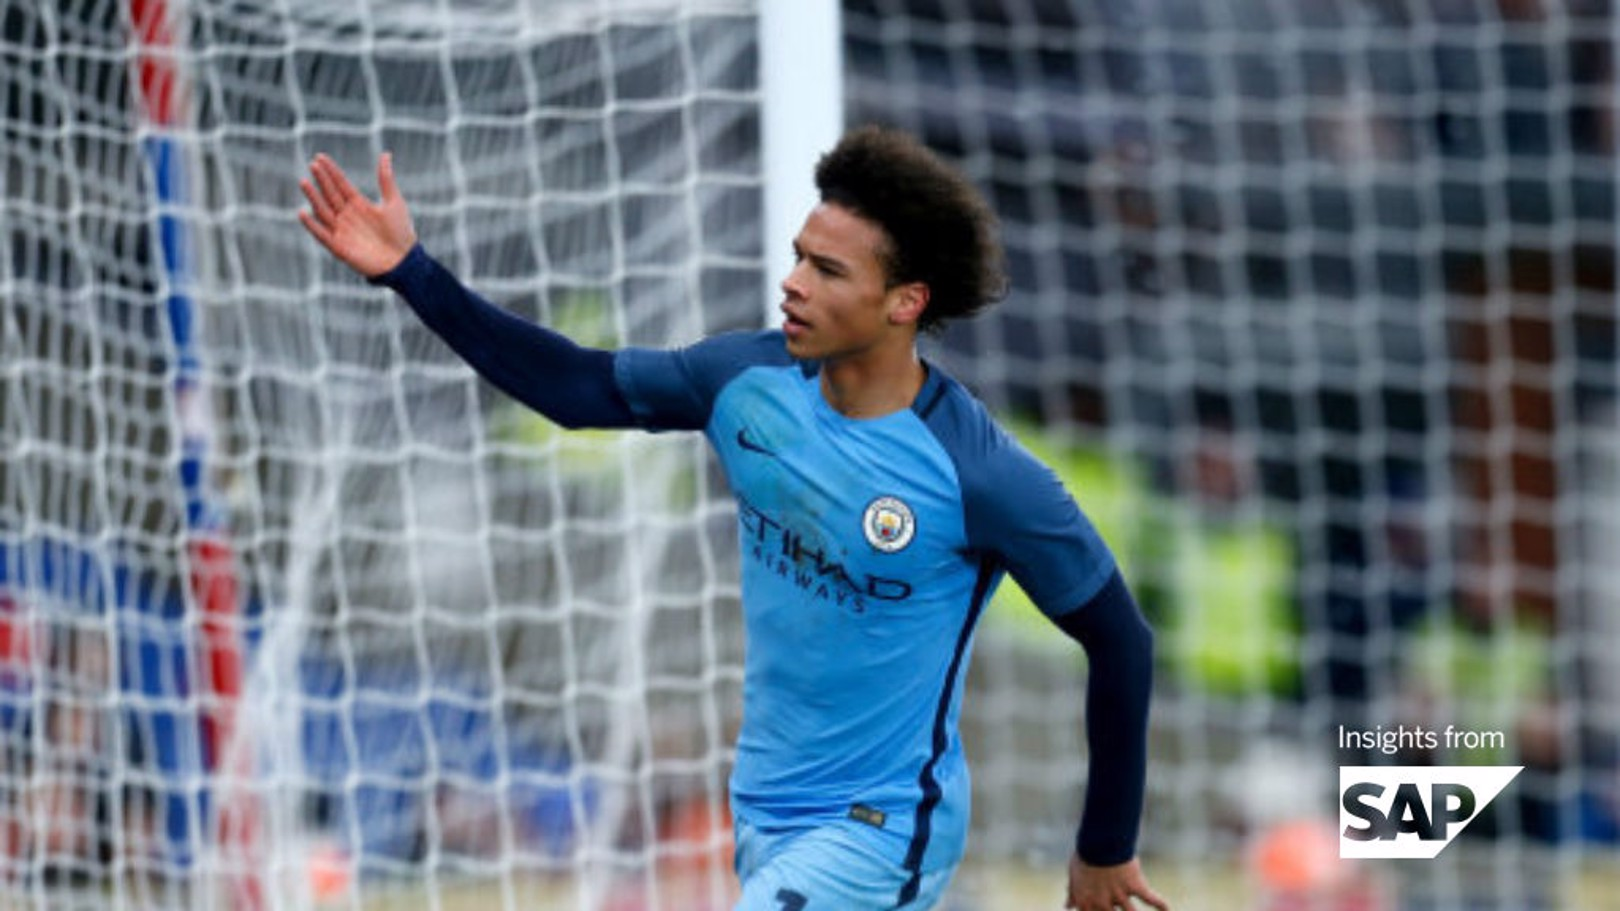 IN SANE: Leroy's first season at City was hugely impressive